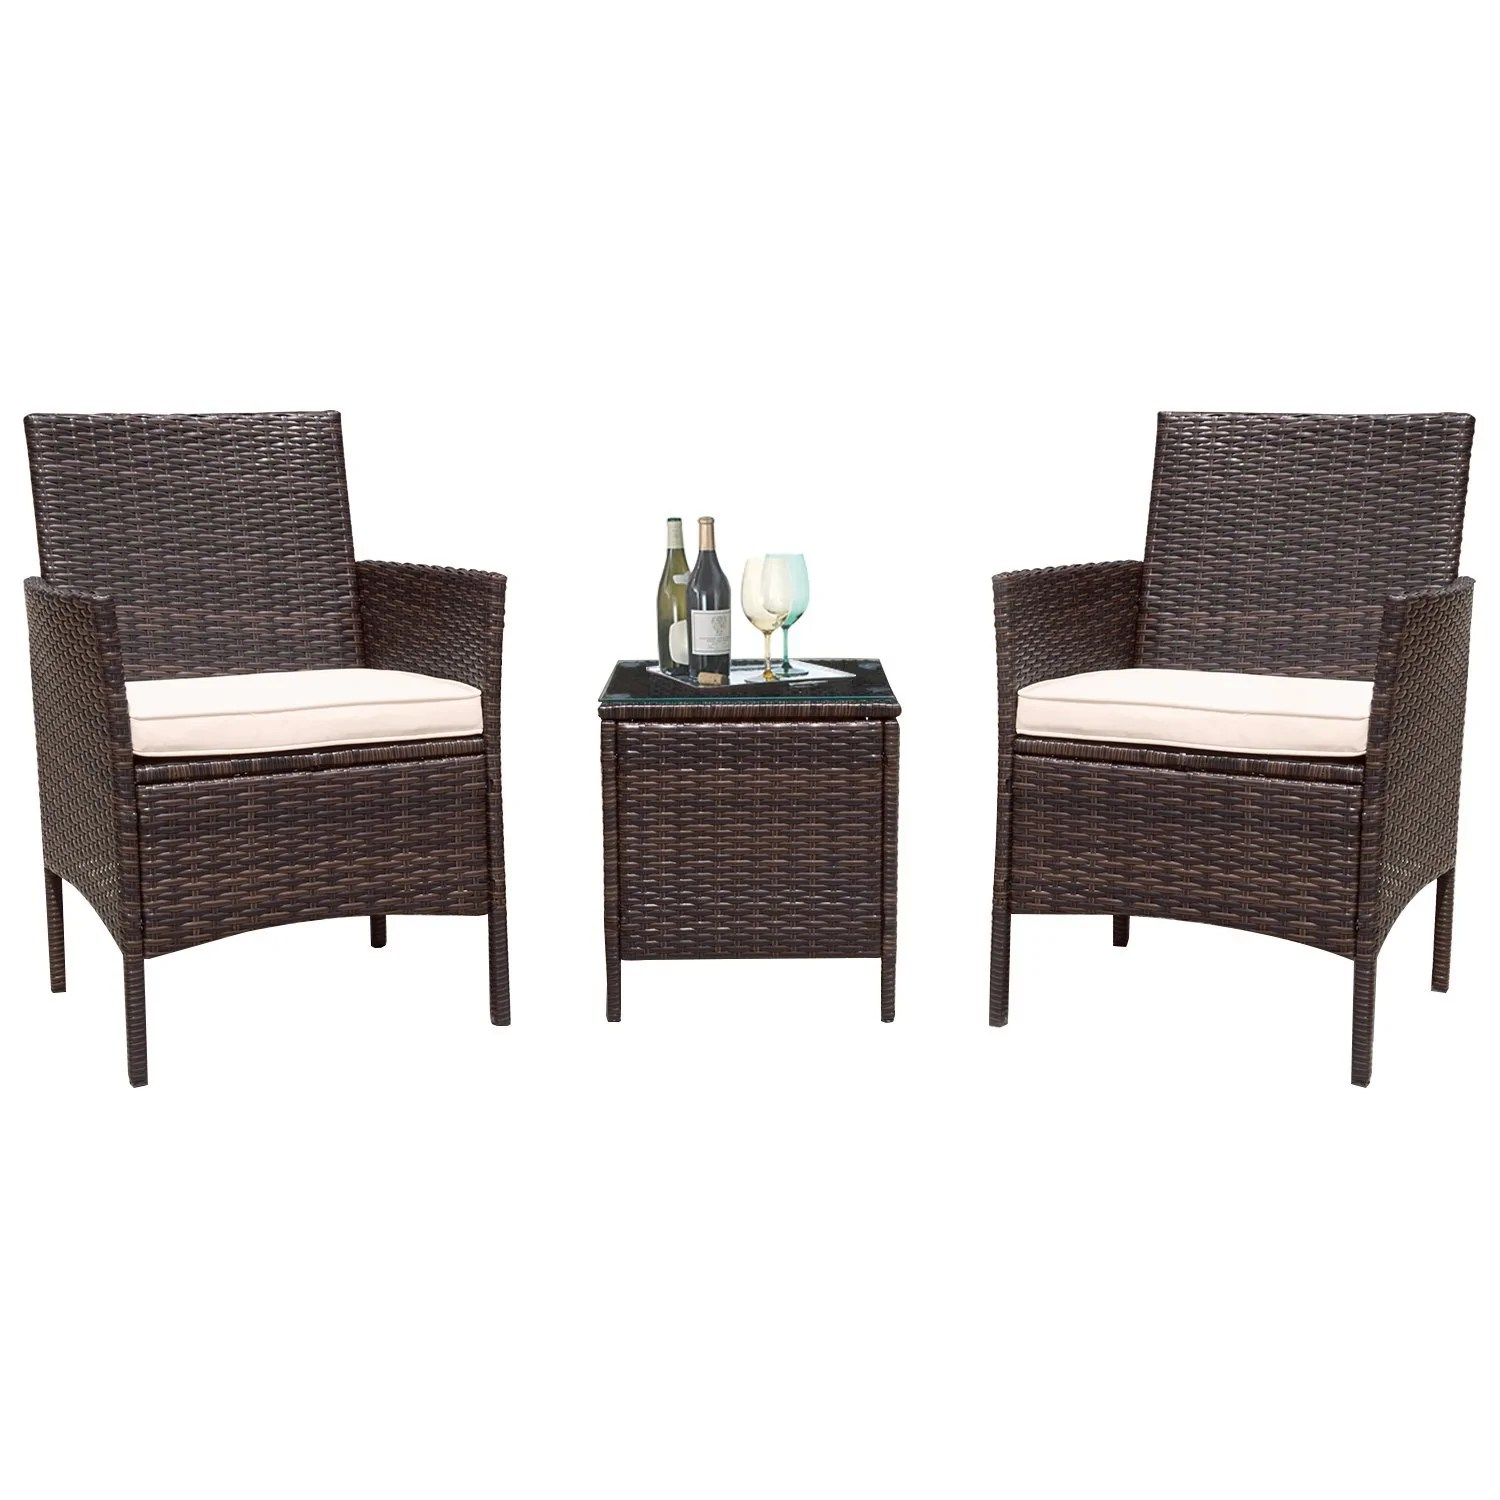 Rattan Sofa Set Clearance Flamaker 3 Pieces Patio Furniture Set Modern Outdoor Furniture Sets Clearance Cushioned Pe Wicker Bistro Set Rattan Chair Conversation Sets With